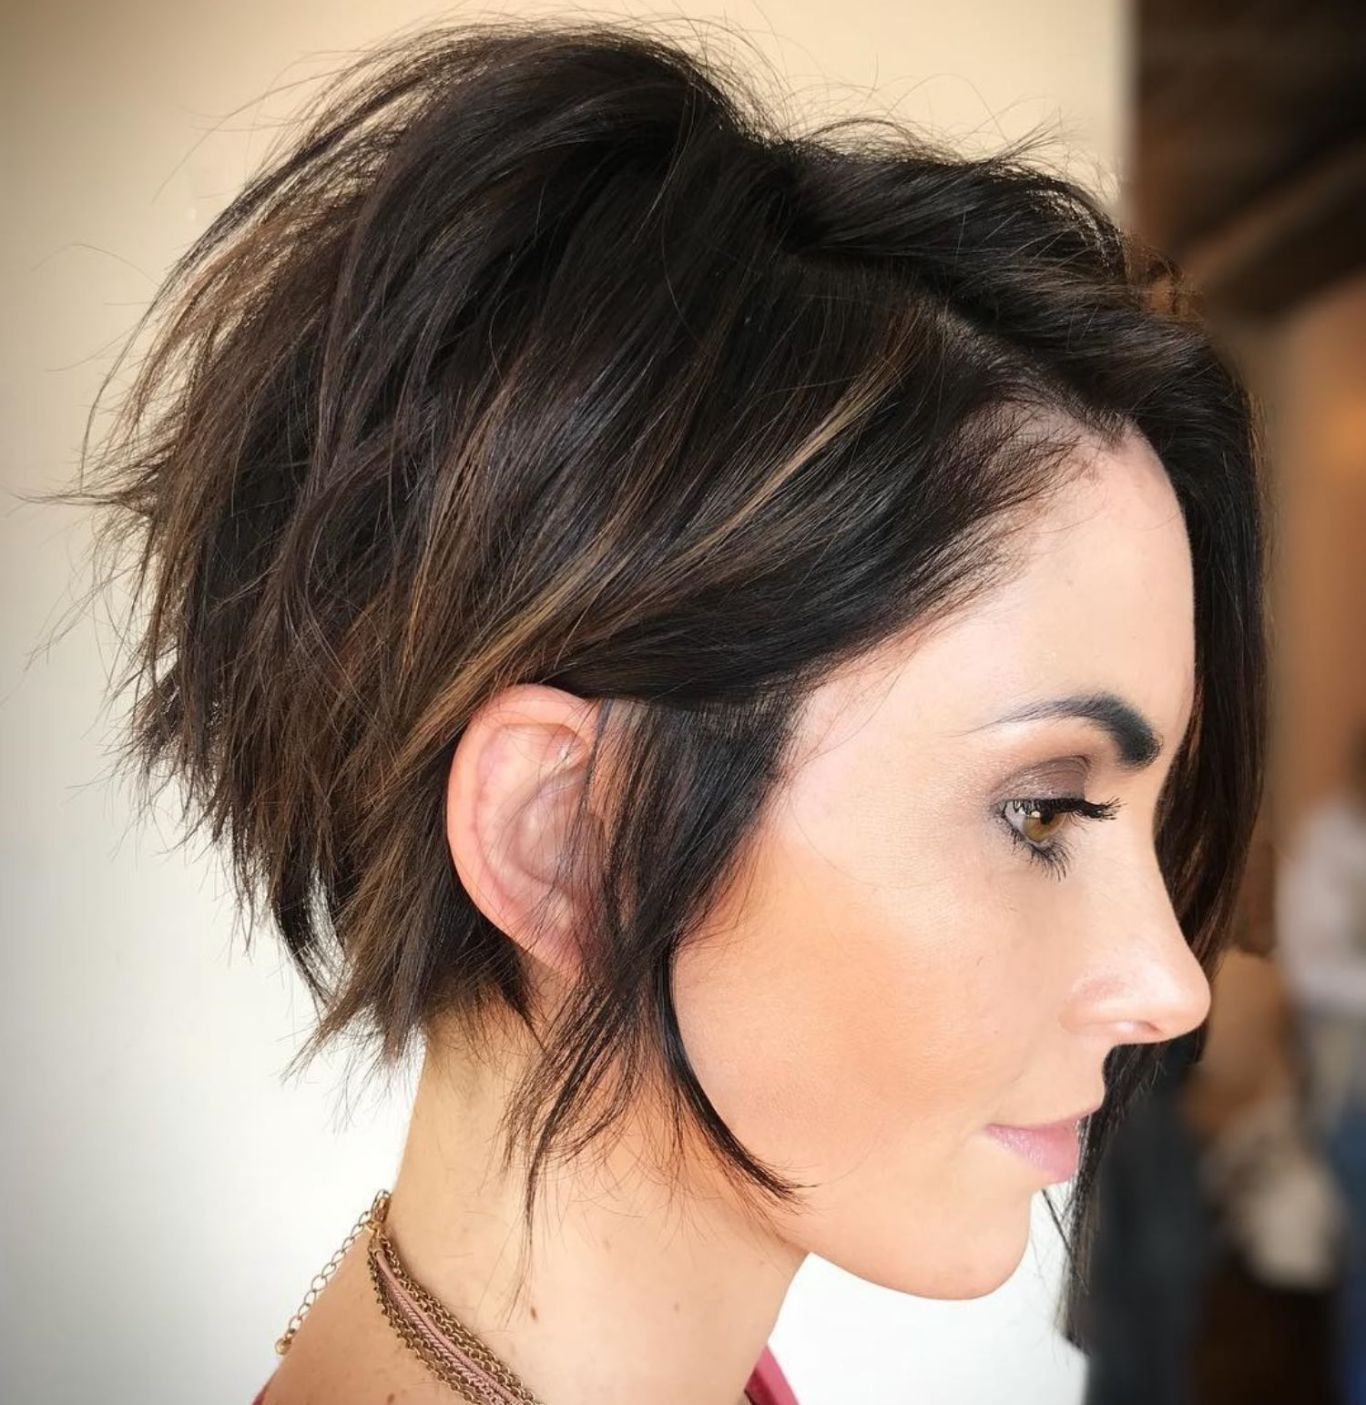 Pixie Haircuts For Thick Hair 50 Ideas Of Ideal Short Haircuts Haircut For Thick Hair Thick Hair Styles Short Hair With Layers